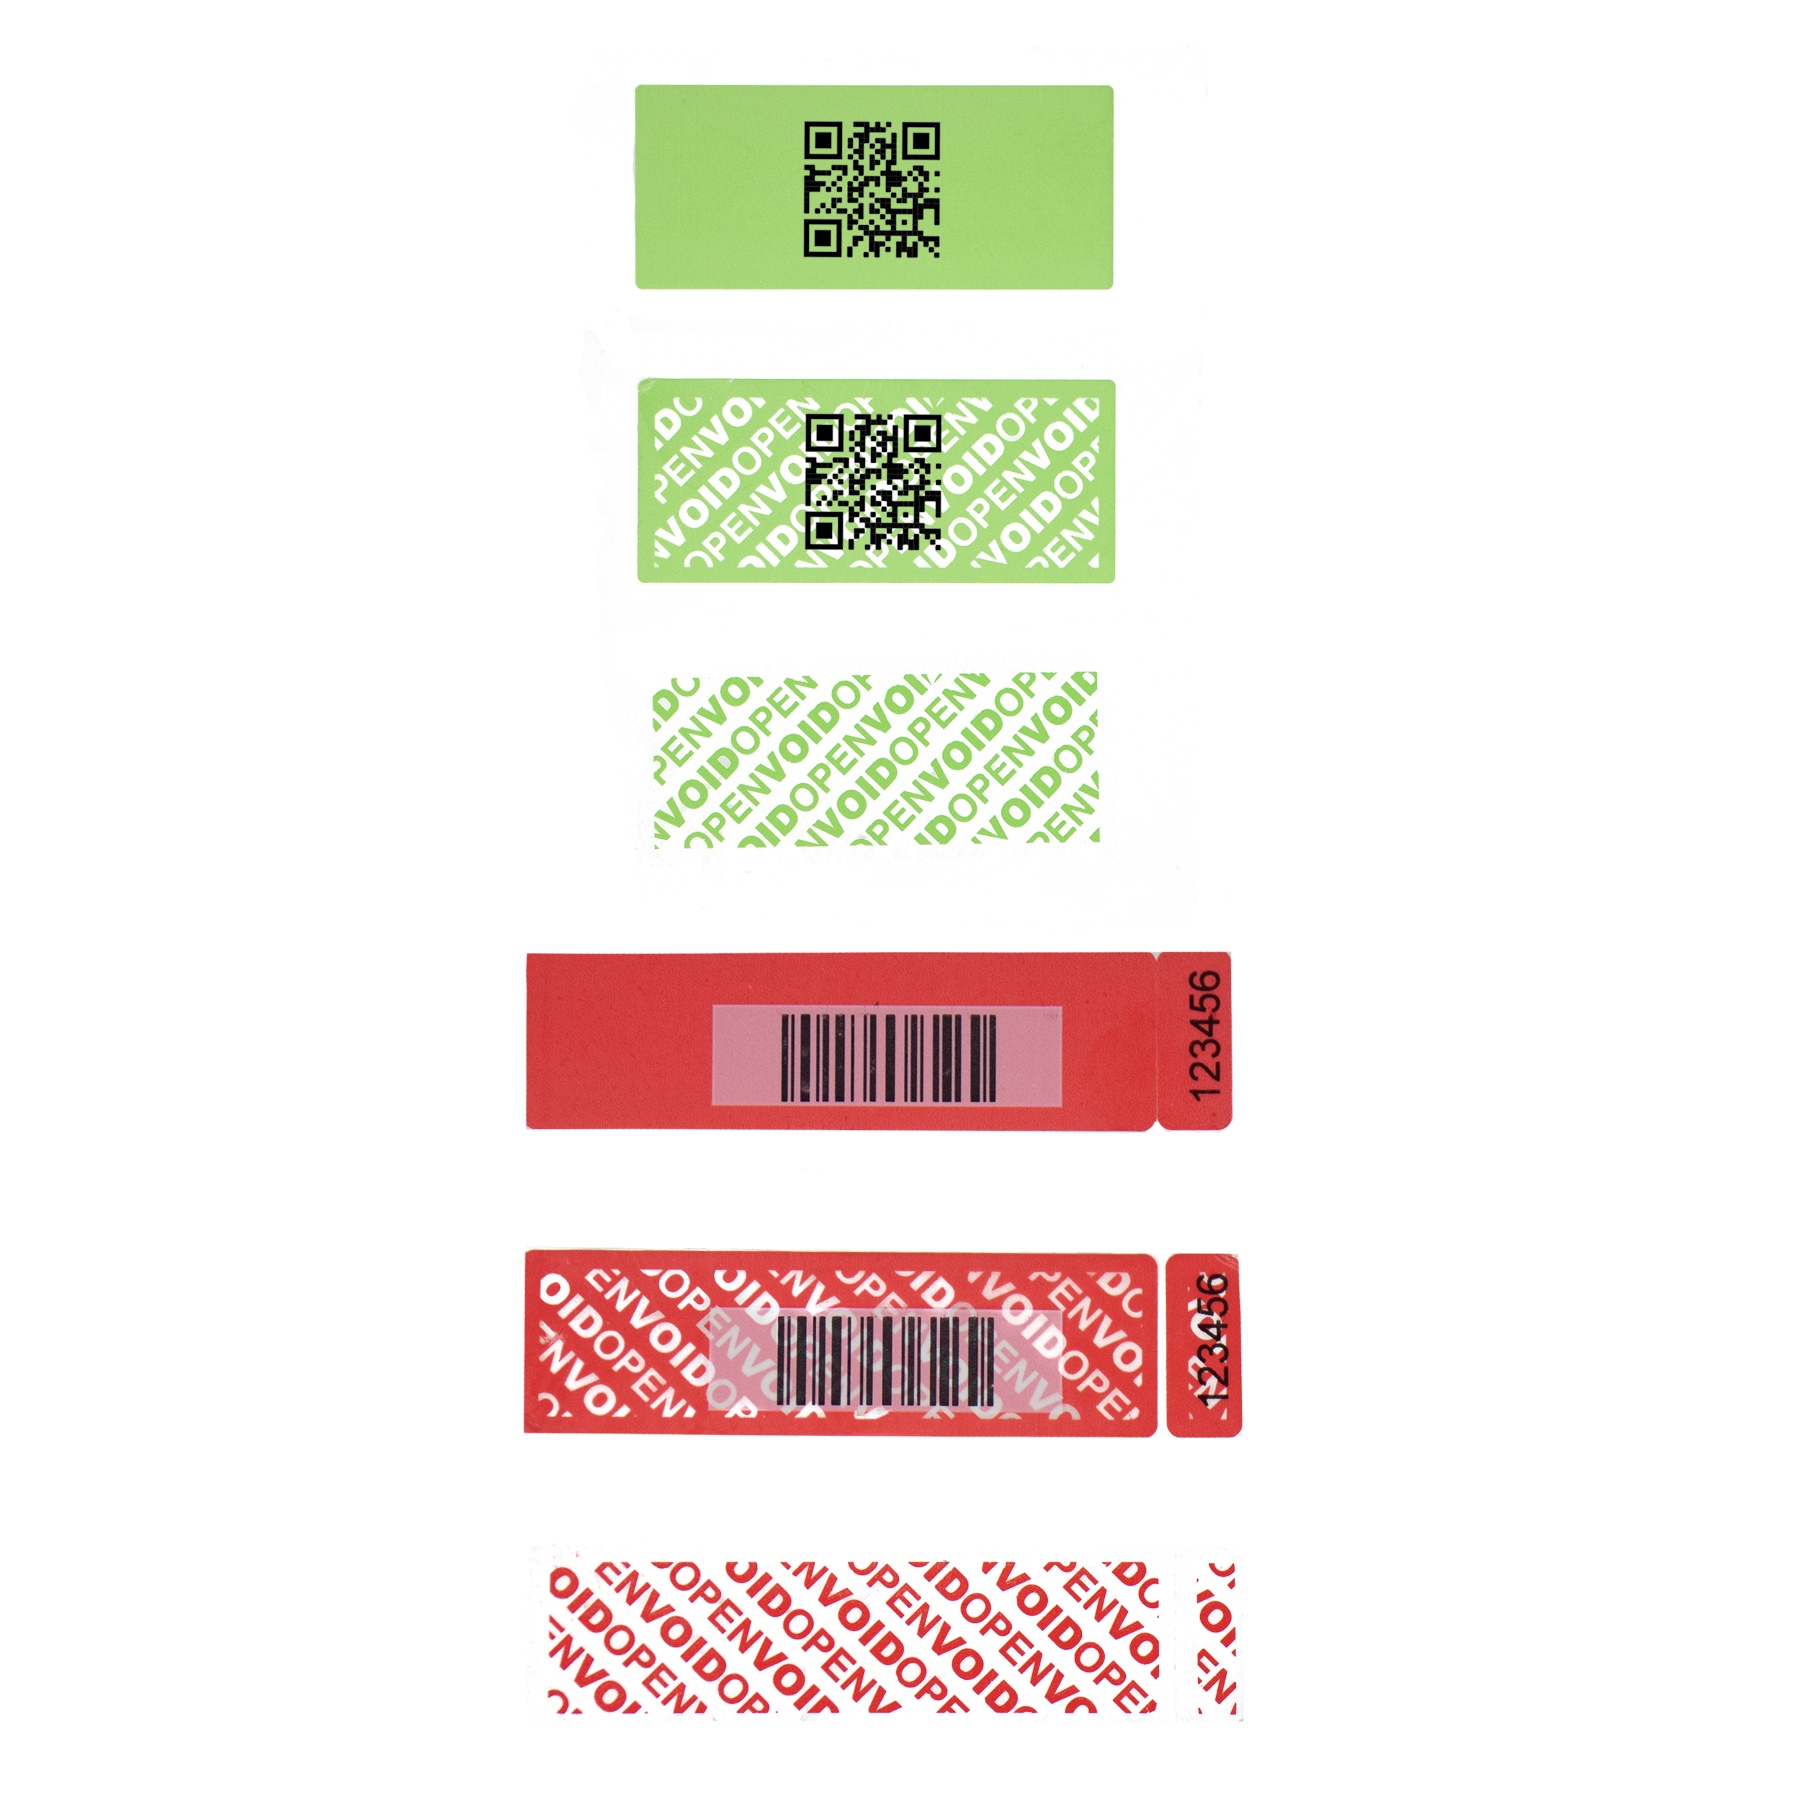 Permanent Tamper evident Security label with QR and Barcode